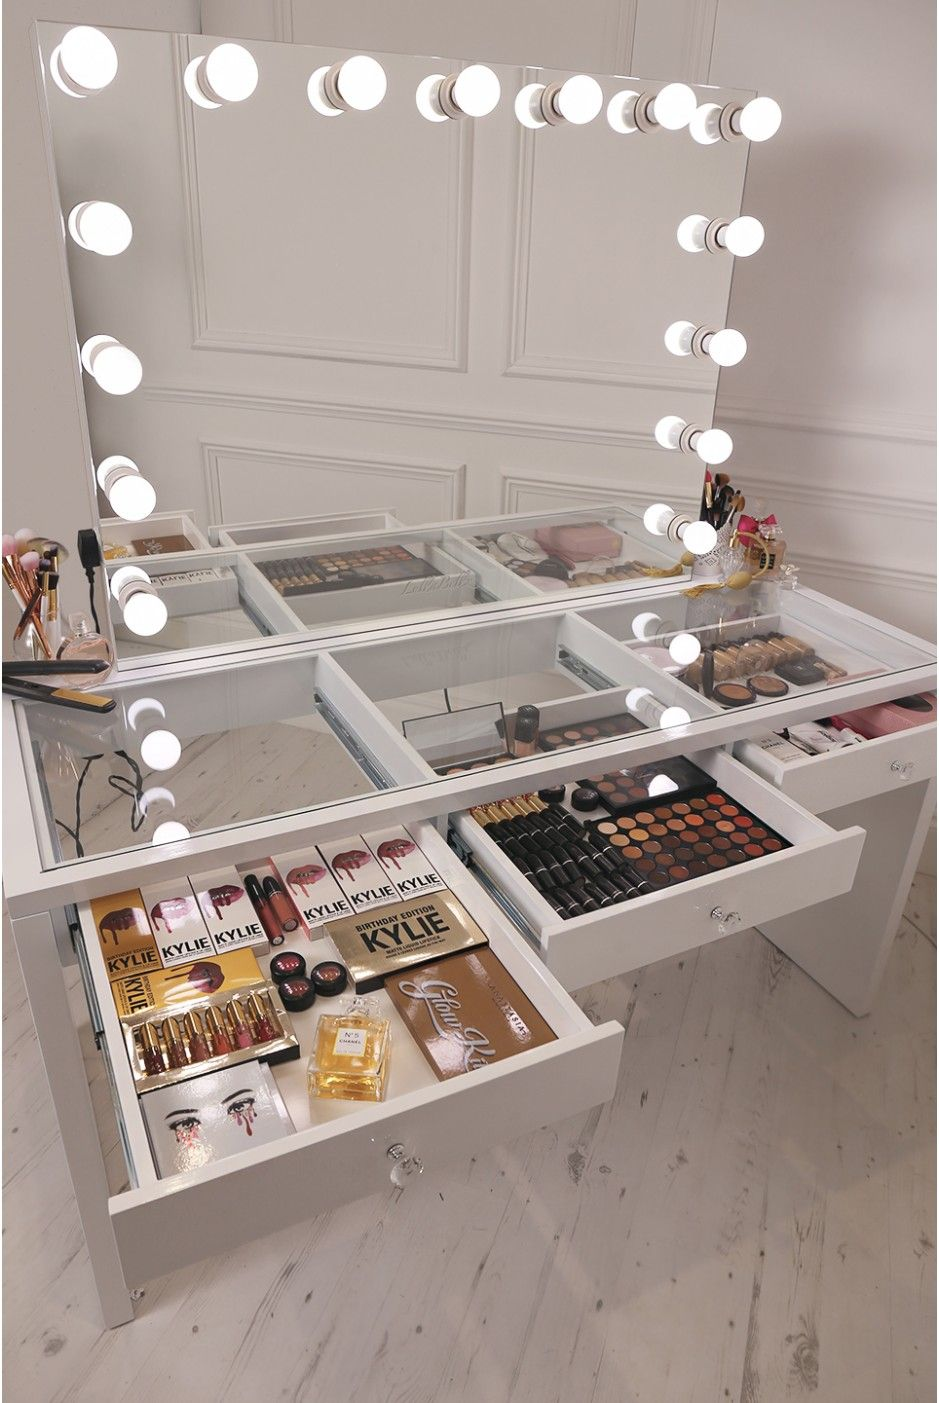 How To Make A Vanity Mirror With Lights Adorable Crisp White Finish Slaystation Make Up Vanity With Premium Storage Decorating Design